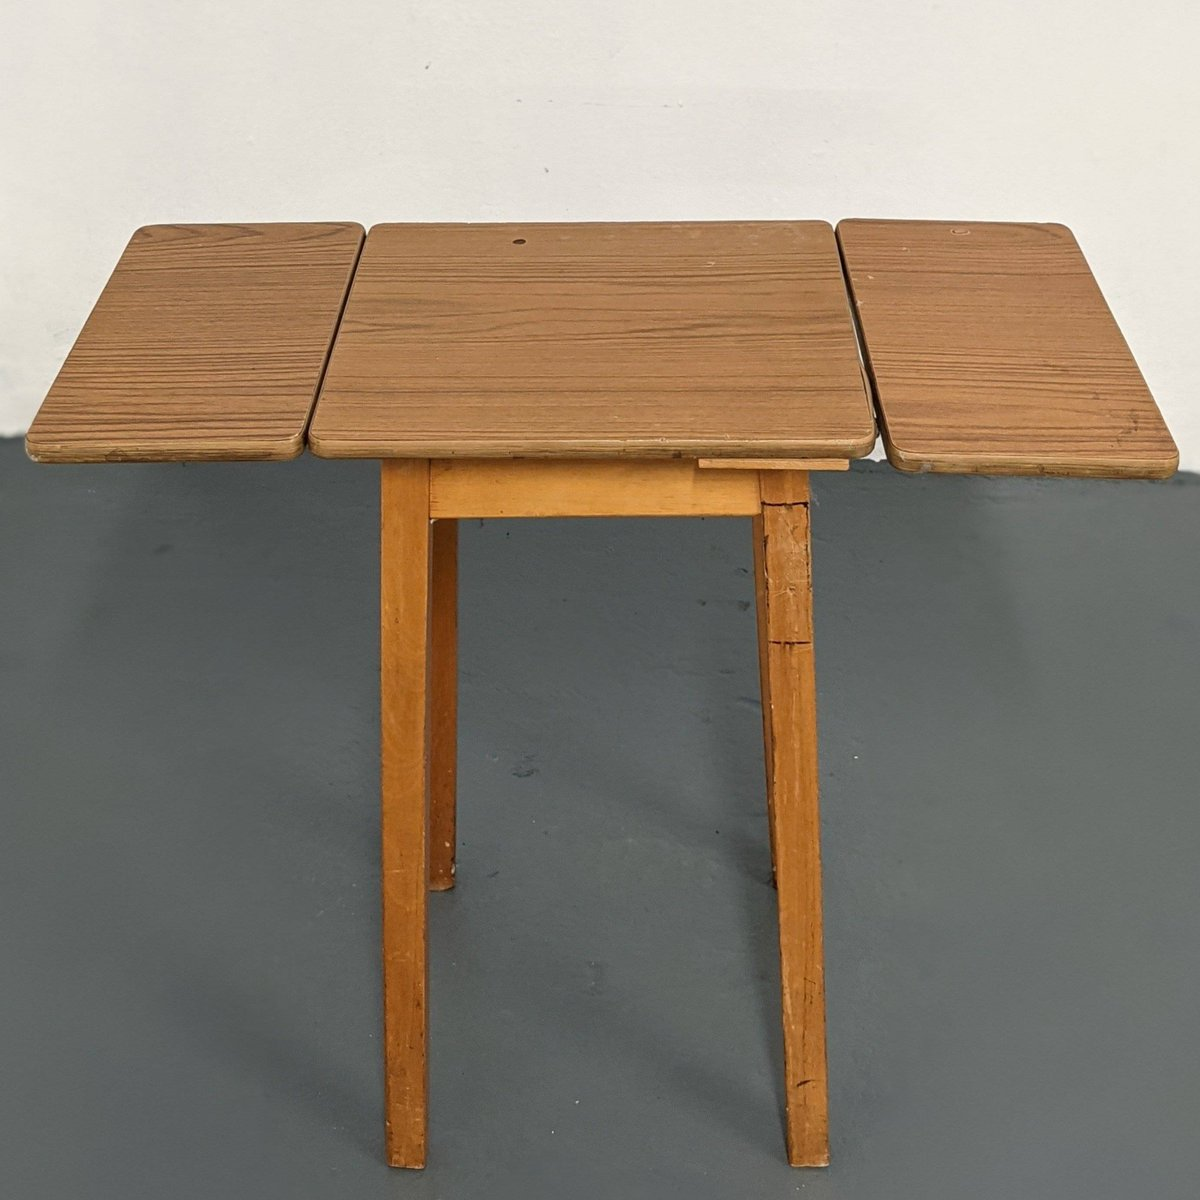 Vintage Retro Wood Effect Laminate/Formica Small Drop Leaf Table #foldingtable #lowcostliving #secondhandfurniture #reuse #retro #formicatable #smalltable #dropleaftable